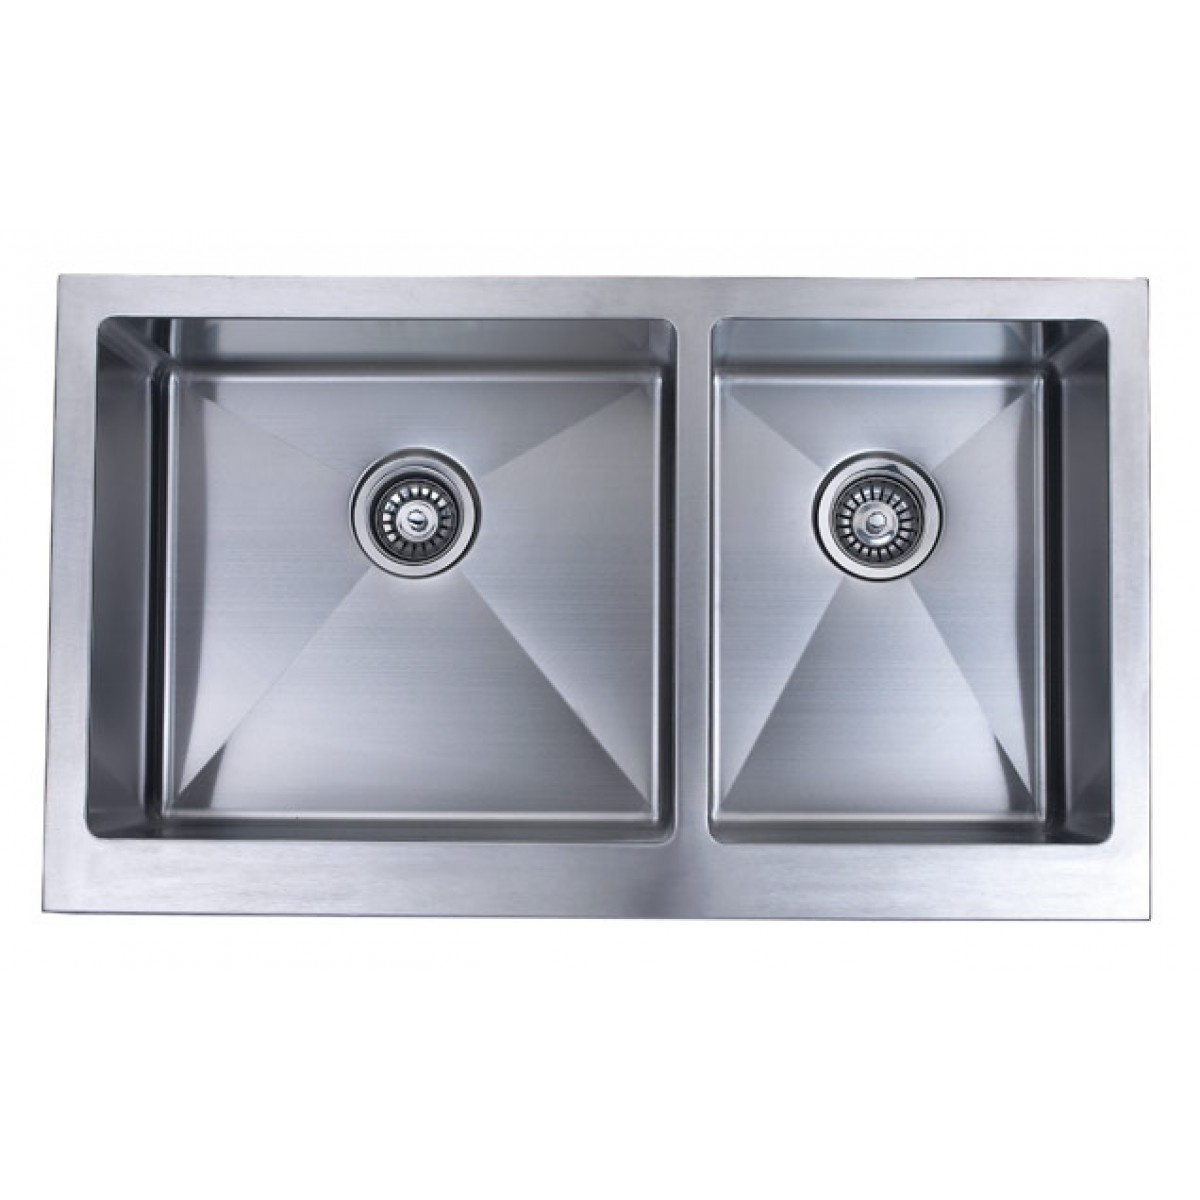 36 inch stainless steel flat front farm apron 60 40 double for Designer kitchen sinks stainless steel